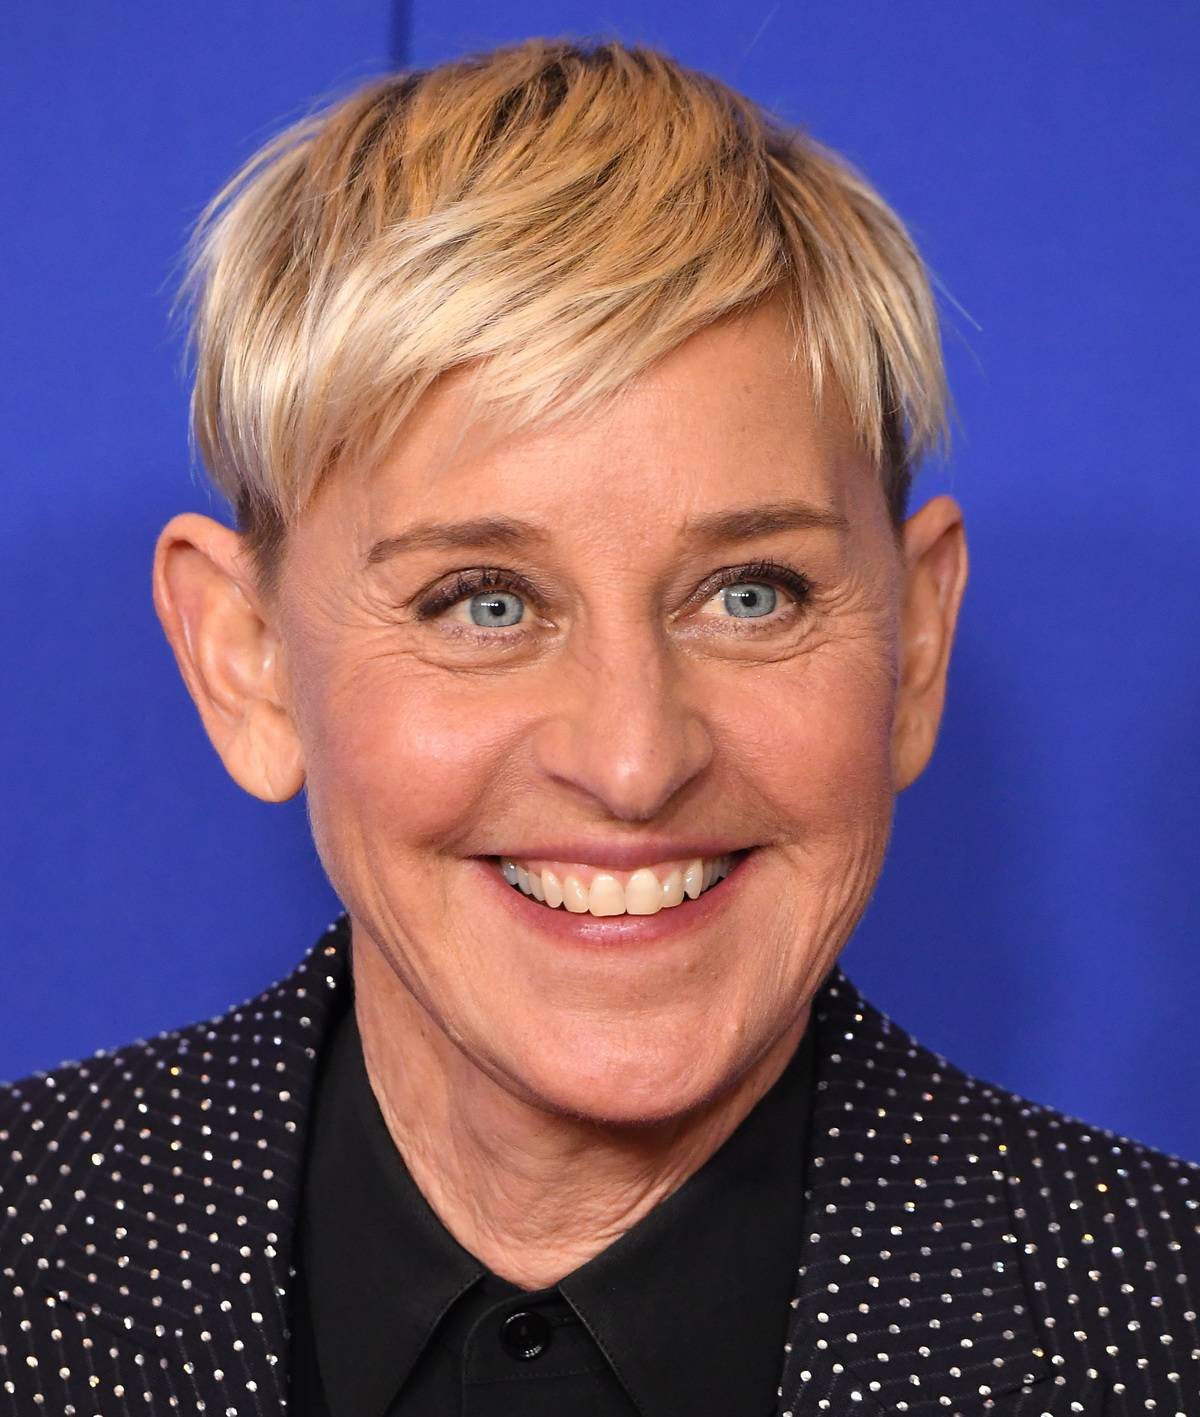 BEVERLY HILLS, CALIFORNIA - JANUARY 05: Ellen Degeneres poses in the press room at the 77th Annual Golden Globe Awards at The Beverly Hilton Hotel on January 05, 2020 in Beverly Hills, California.